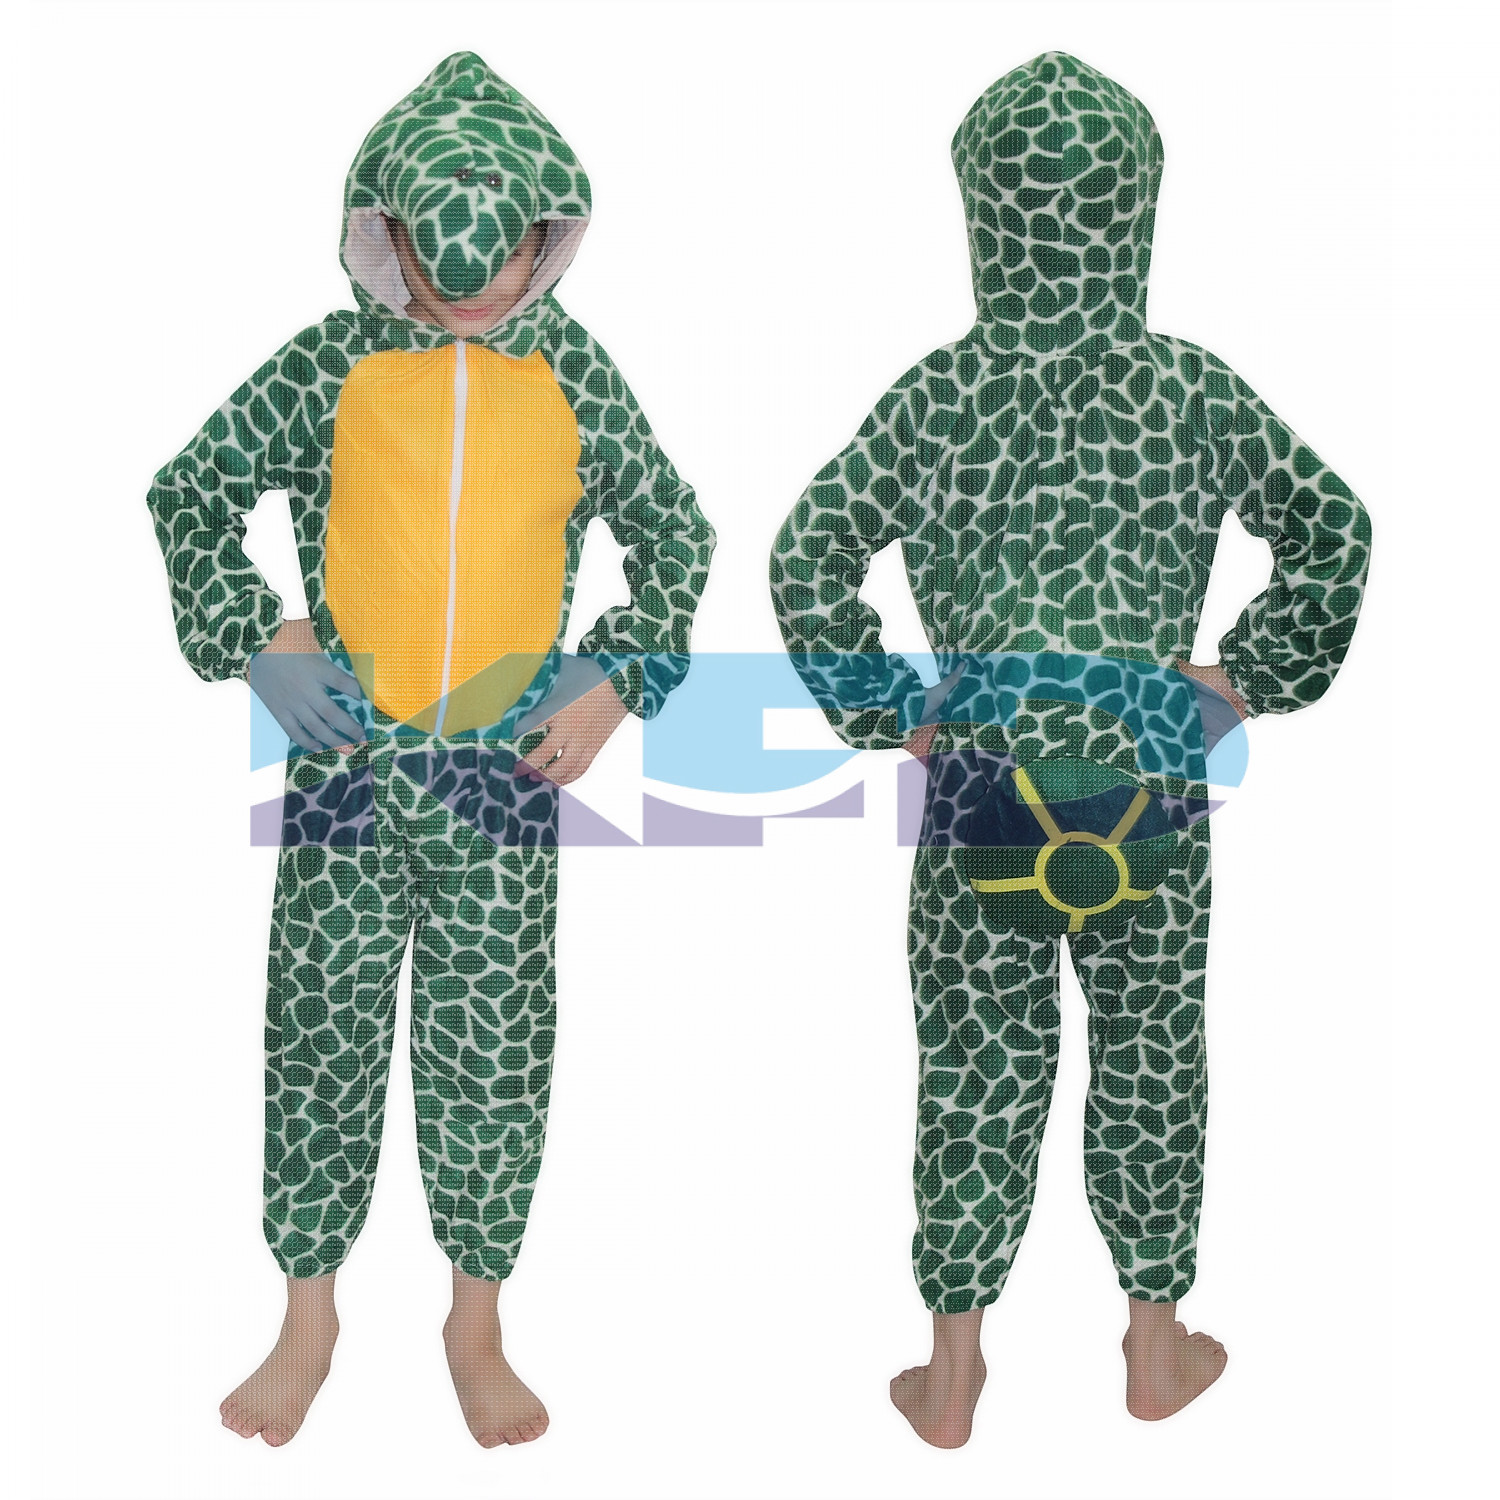 Tortoise fancy dress for kids,Water Animal Costume for School Annual function/Theme Party/Competition/Stage Shows Dress